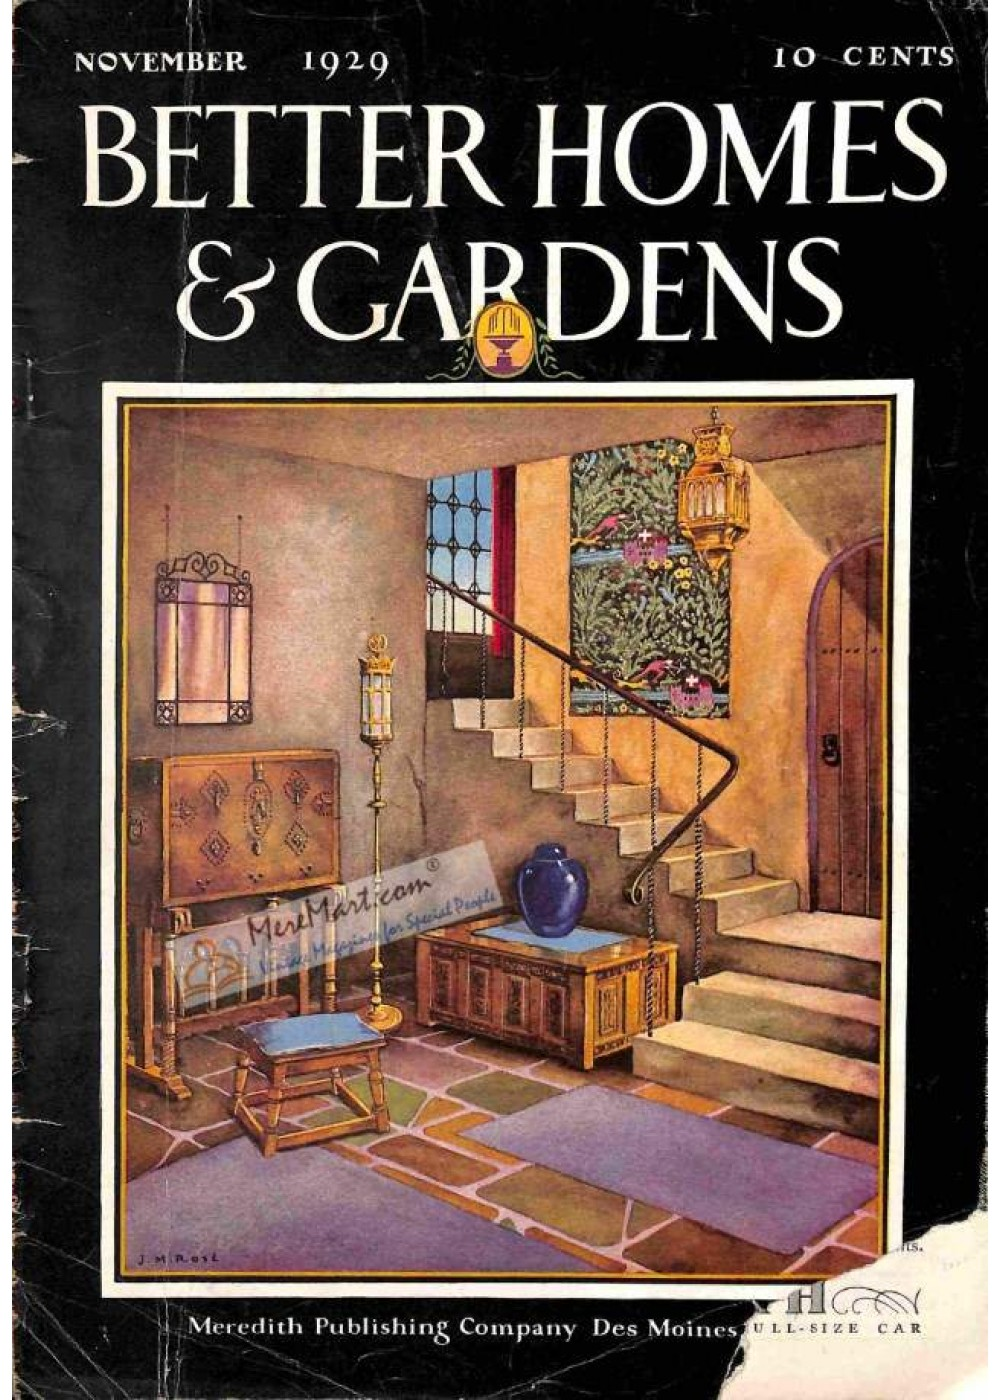 Better Homes And Gardens Magazine June 2017 Edition: Better Homes And Gardens Magazine, November 1929